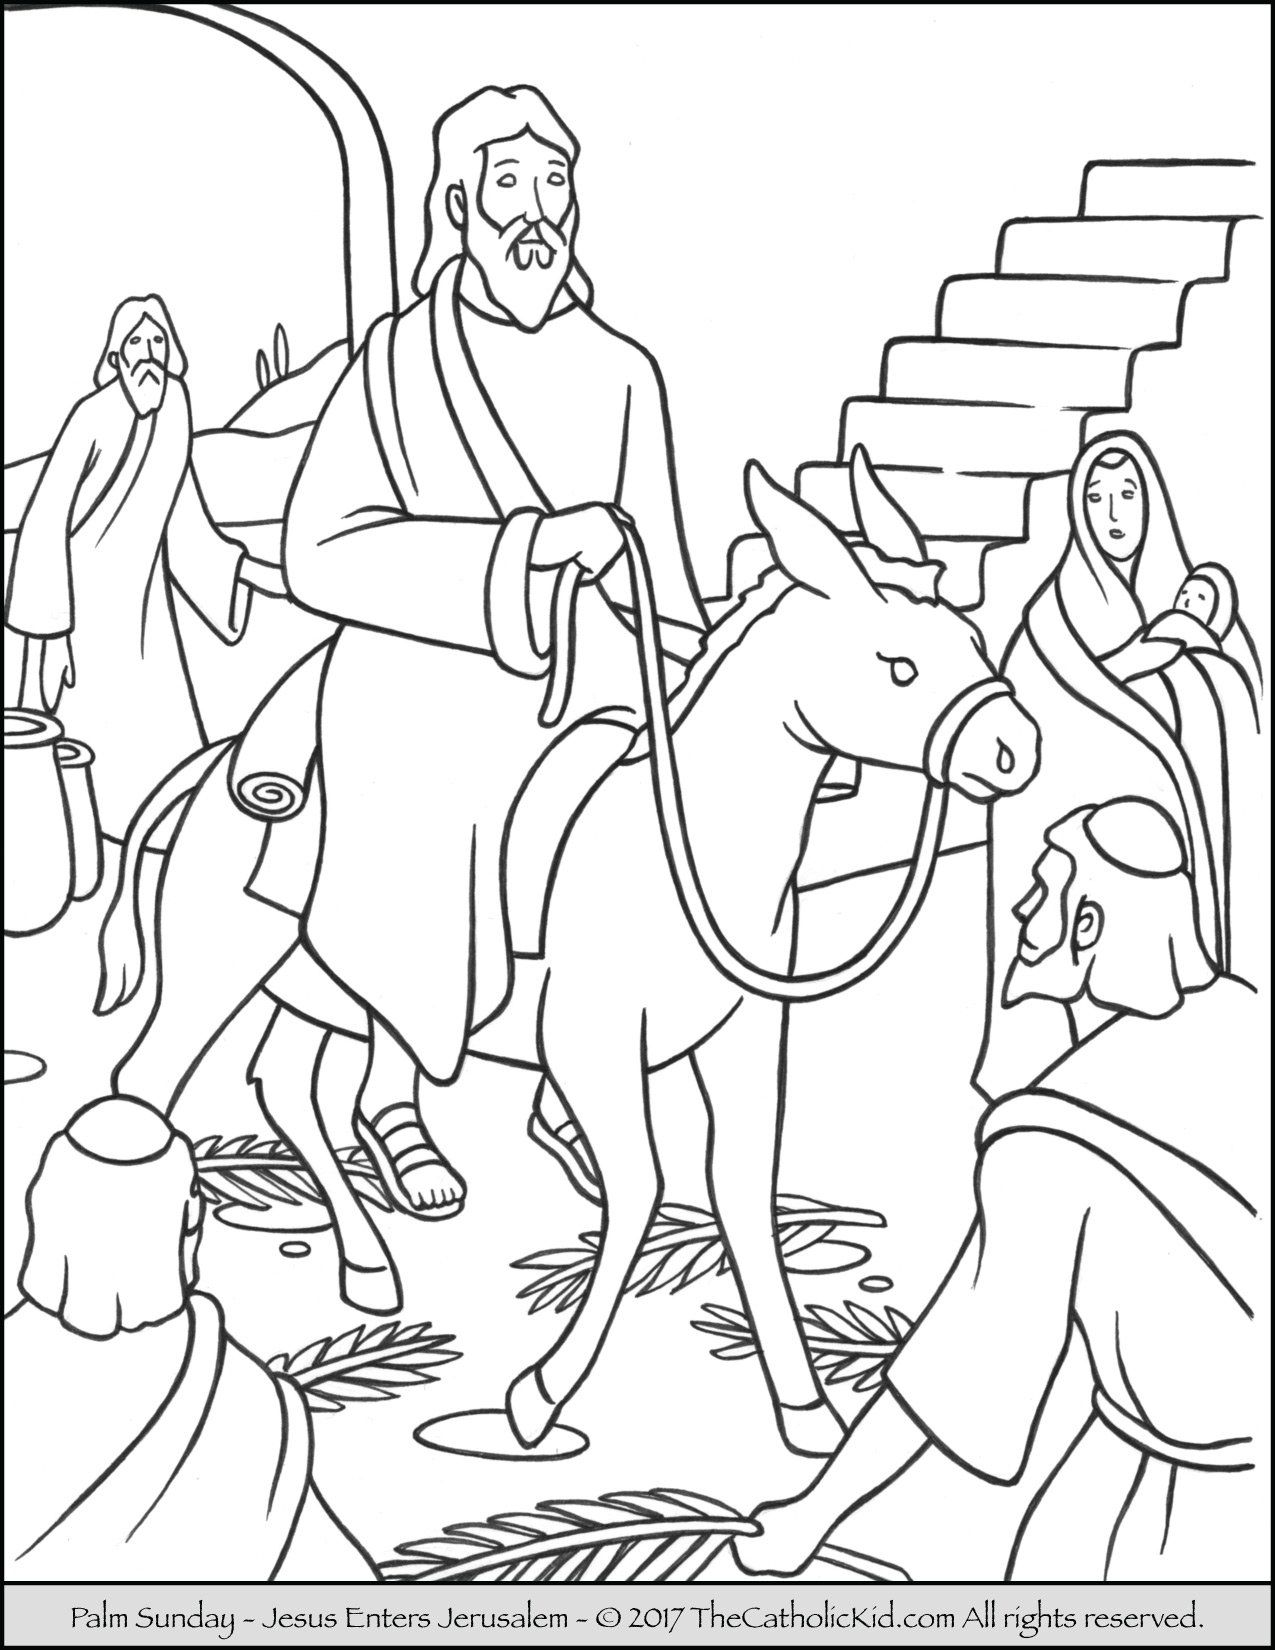 palm sunday coloring pages printable - photo#17